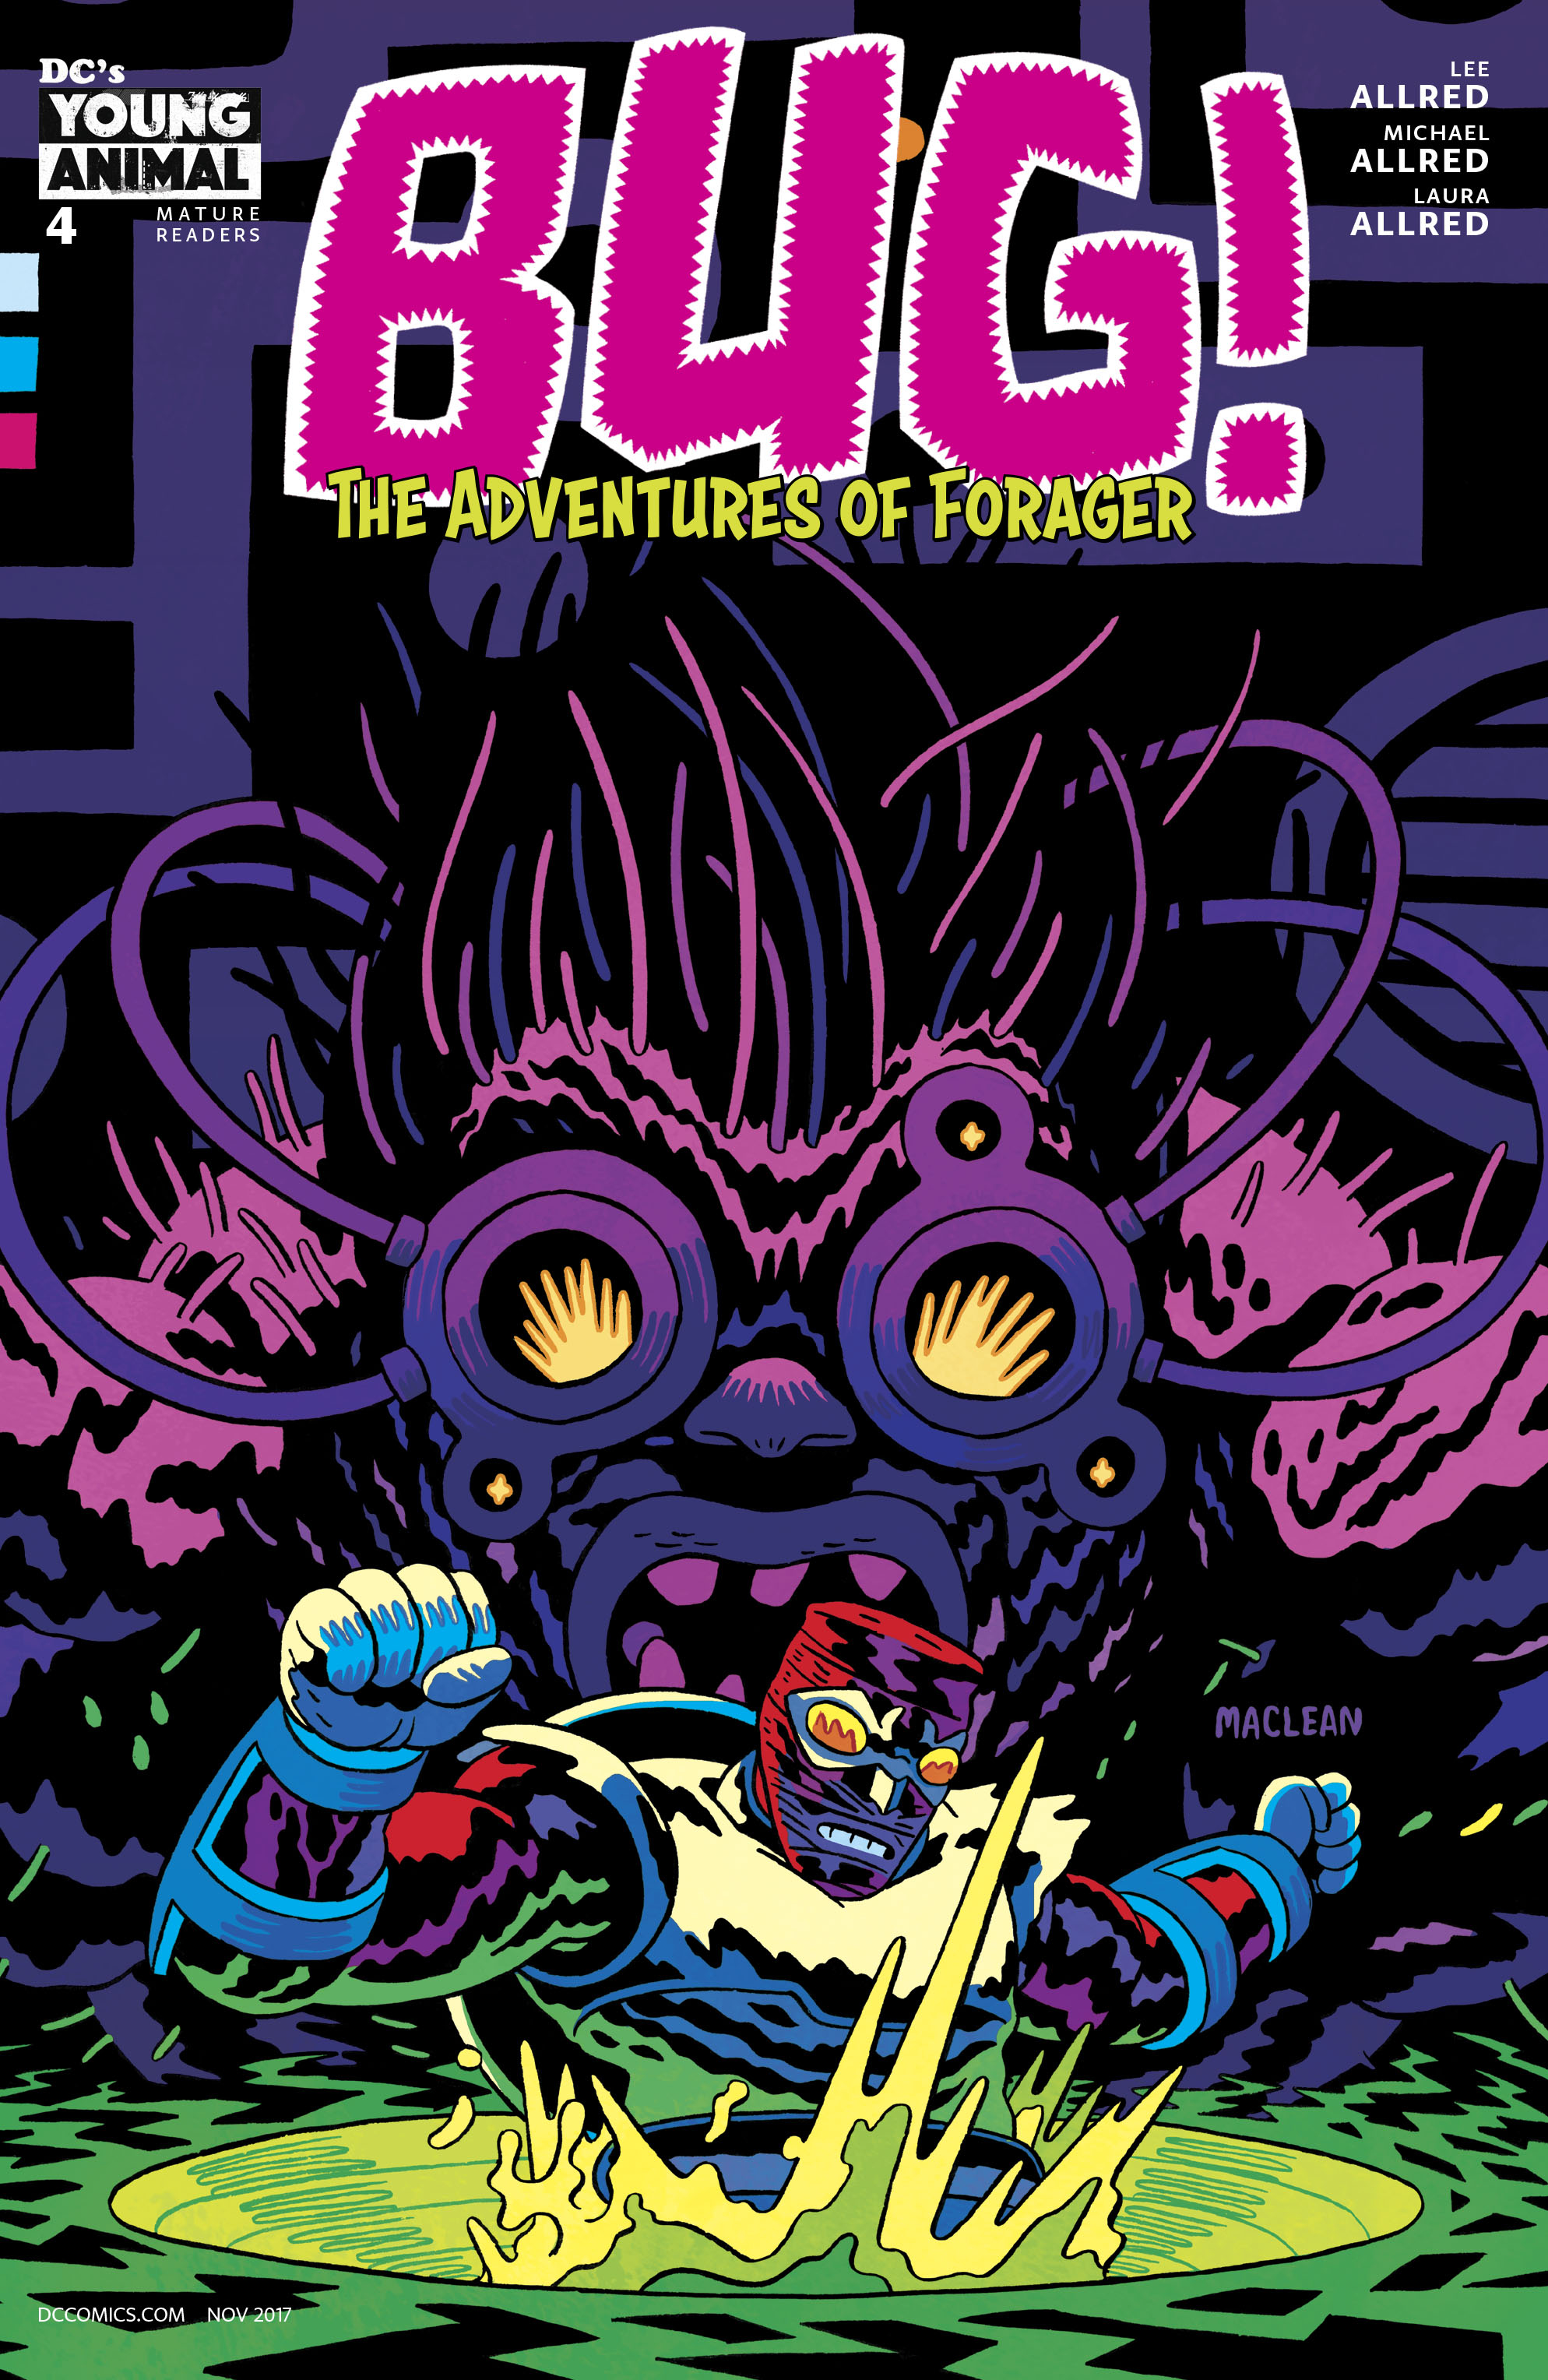 BUG THE ADVENTURES OF FORAGER #4 (OF 6) VAR ED (MR)